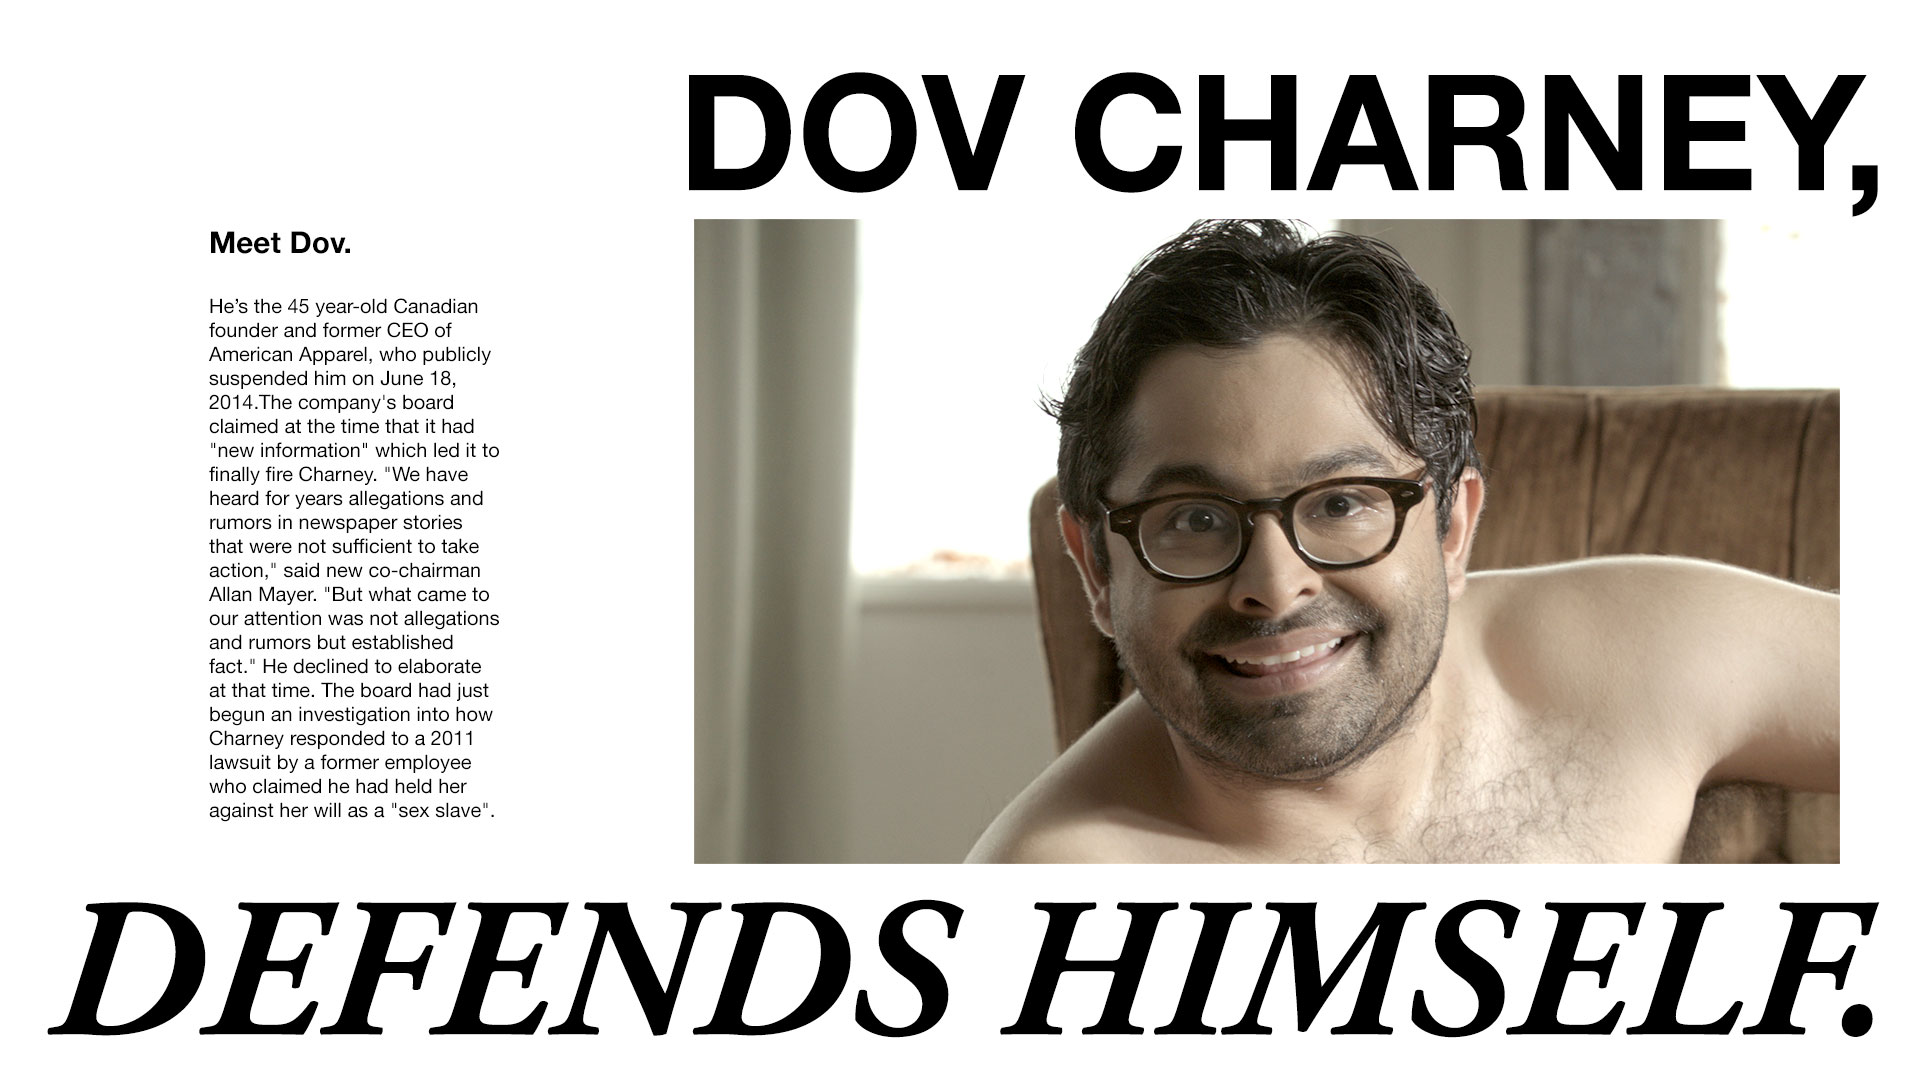 American Apparel's Dov Charney Defends Himself